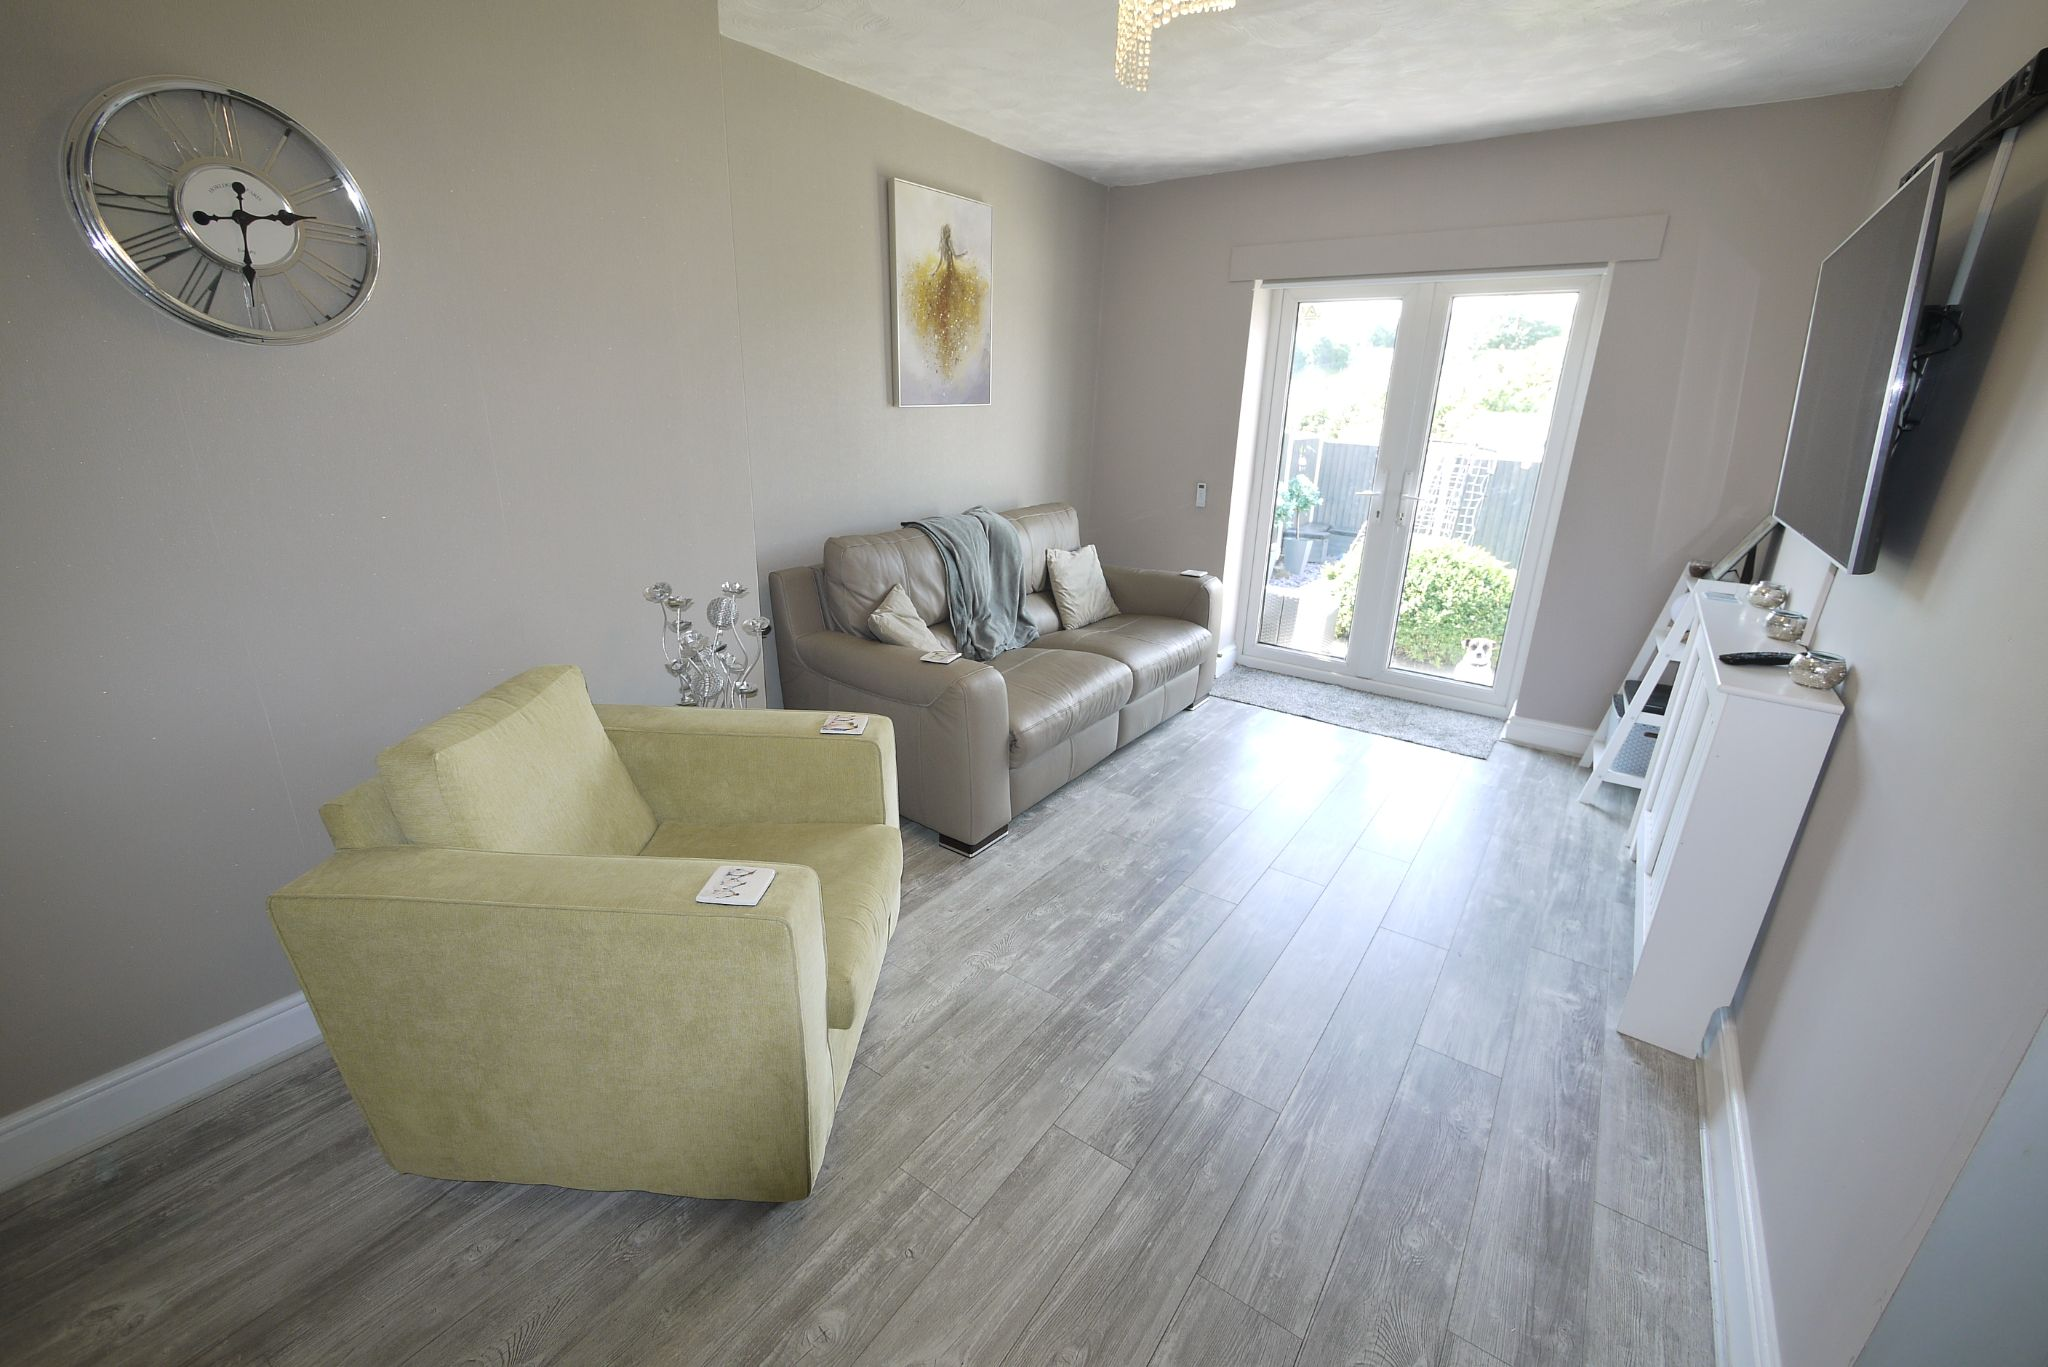 3 bedroom detached bungalow SSTC in Brighouse - Photograph 2.